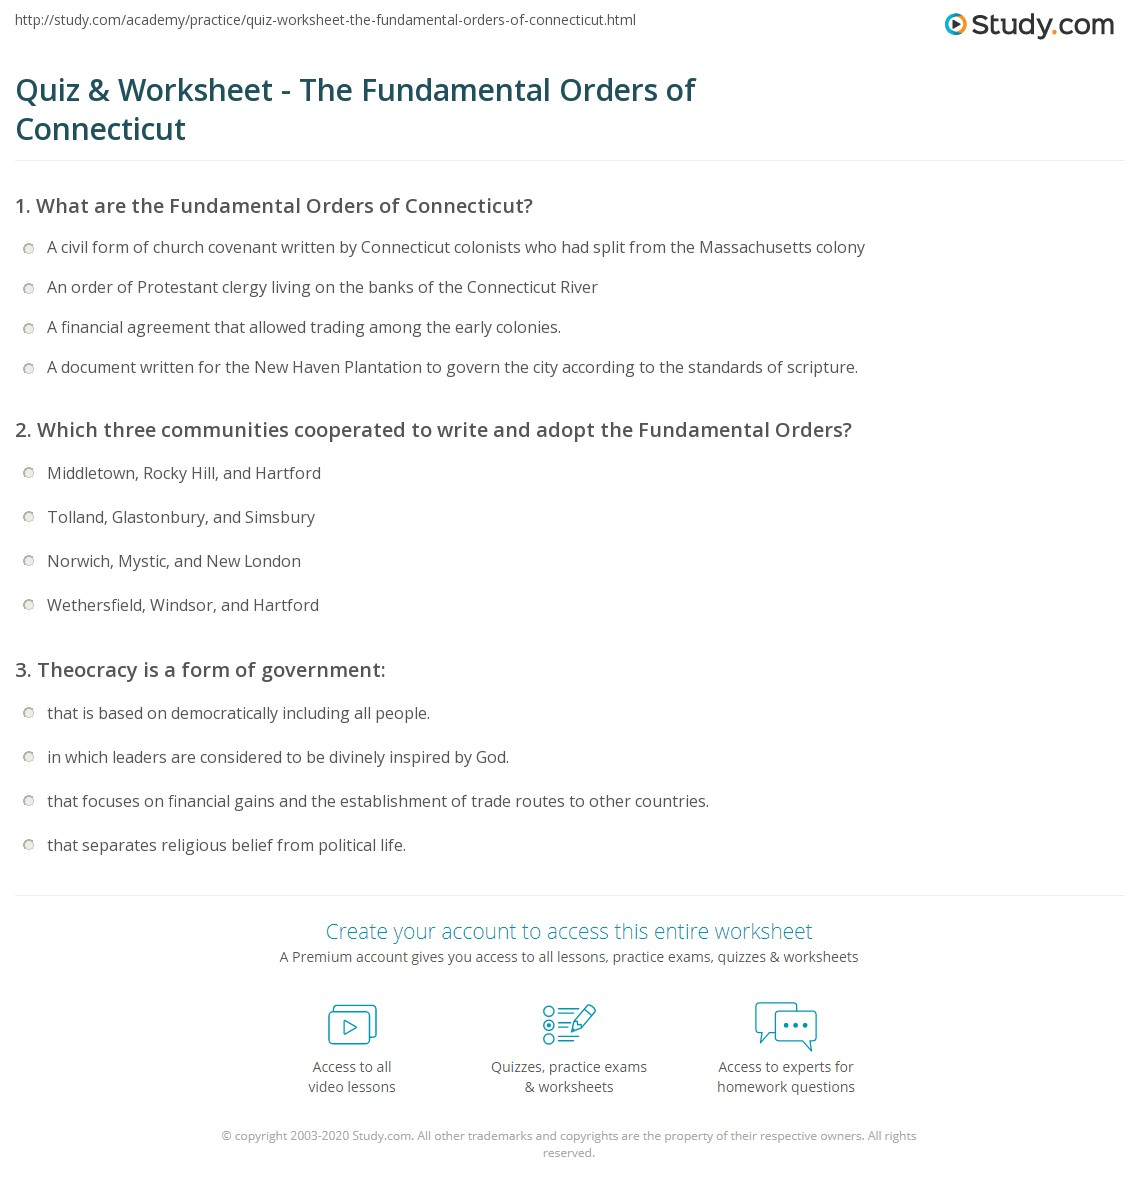 quiz worksheet the fundamental orders of connecticut. Black Bedroom Furniture Sets. Home Design Ideas